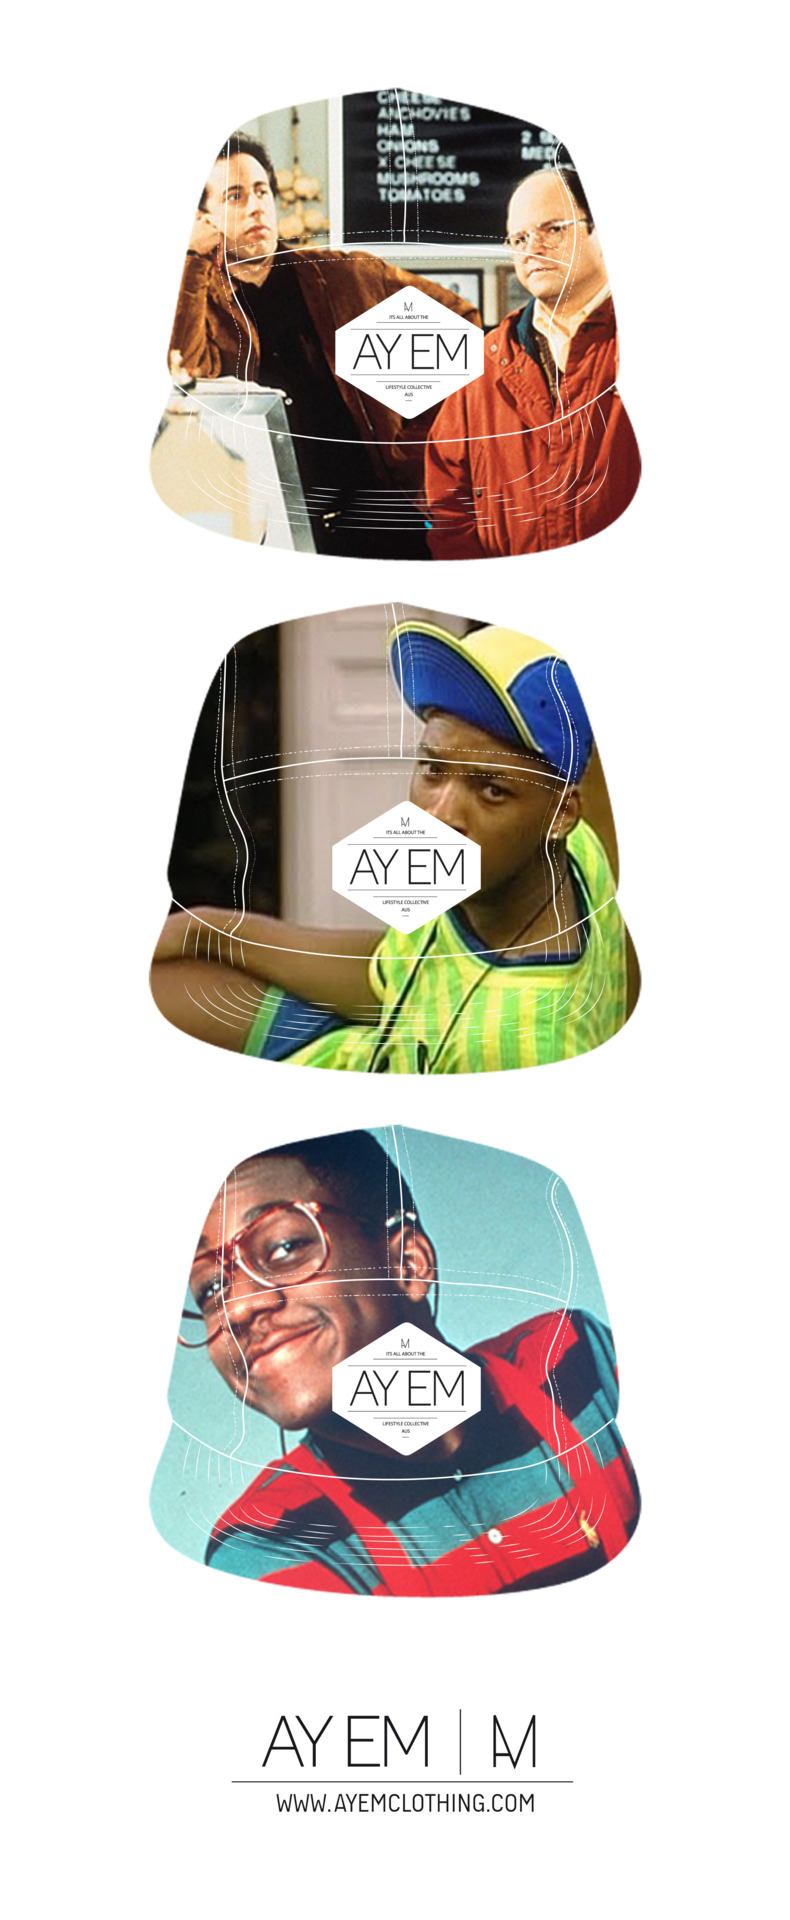 AYEM X TV SERIES ILLUSTRATION